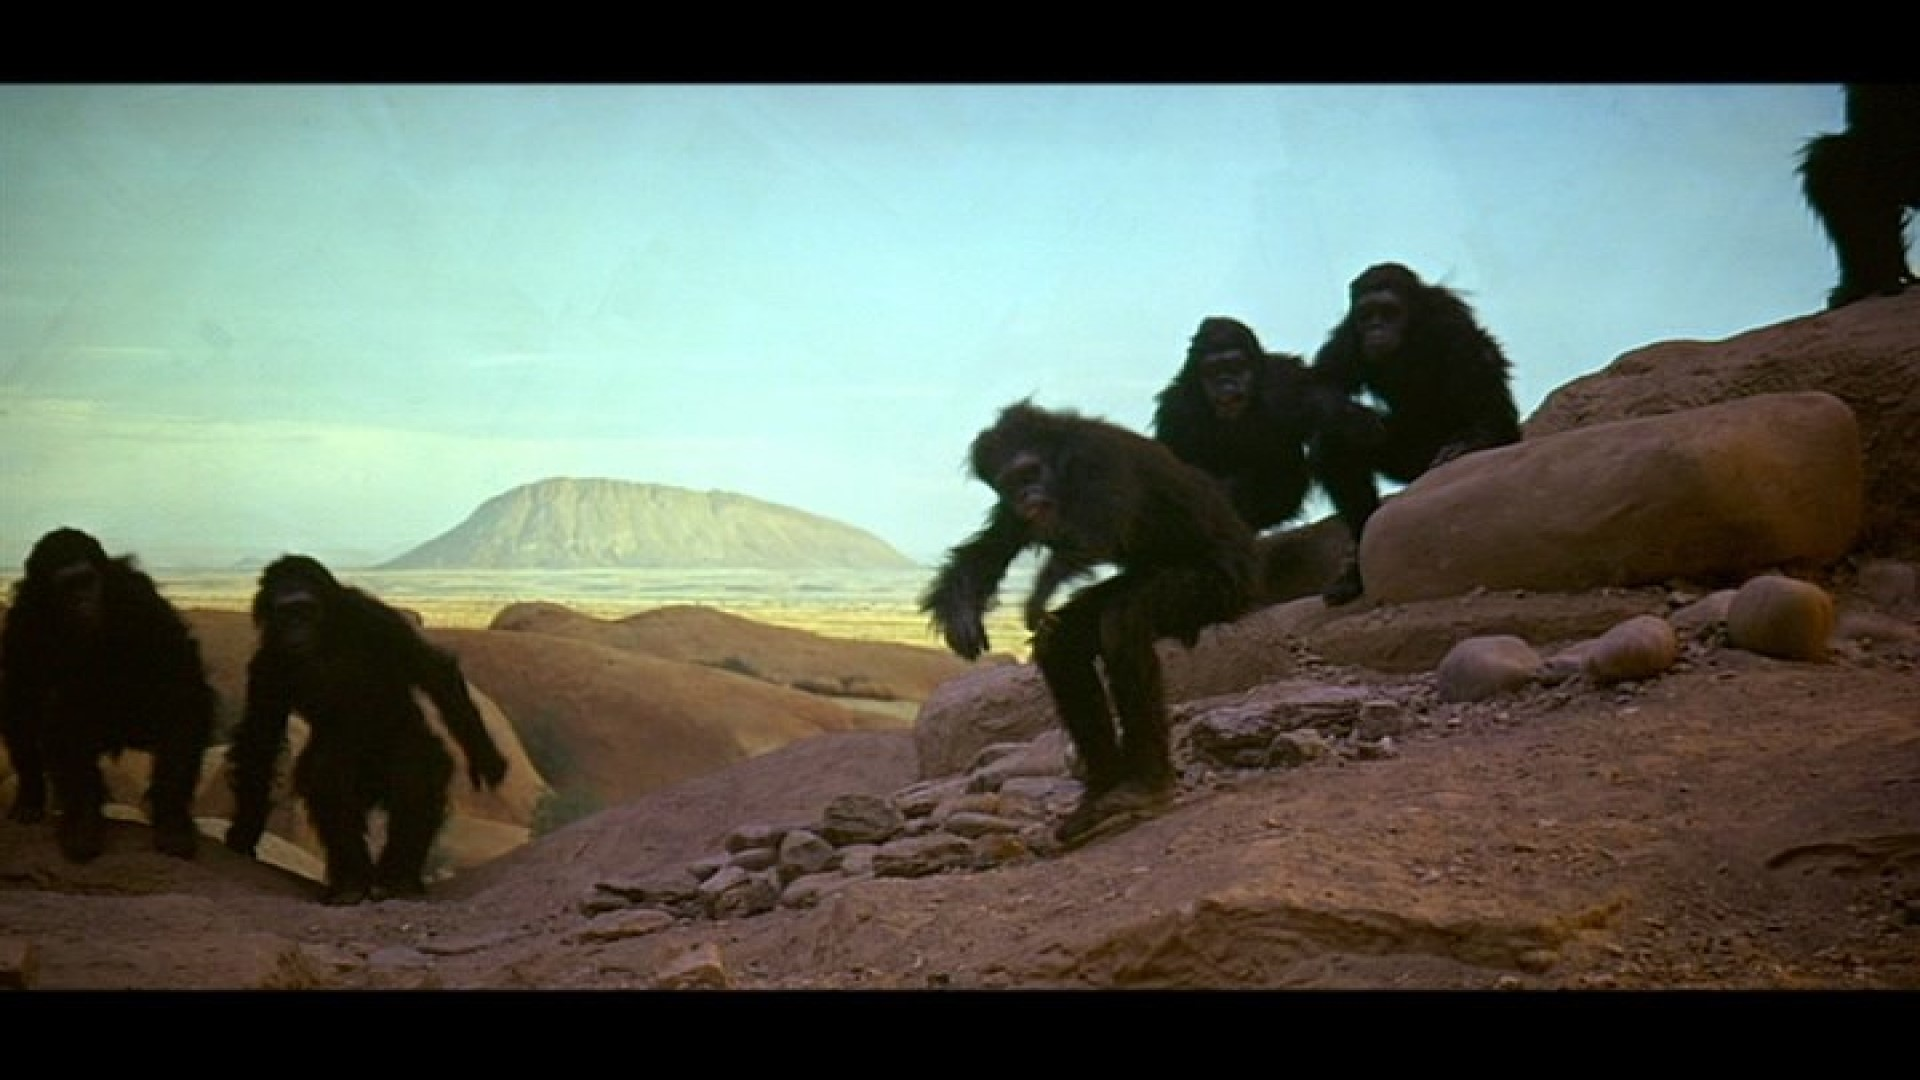 2001: A SPACE ODYSSEY (1968) - Dawn of Man Ape Mask - Image 10 of 12